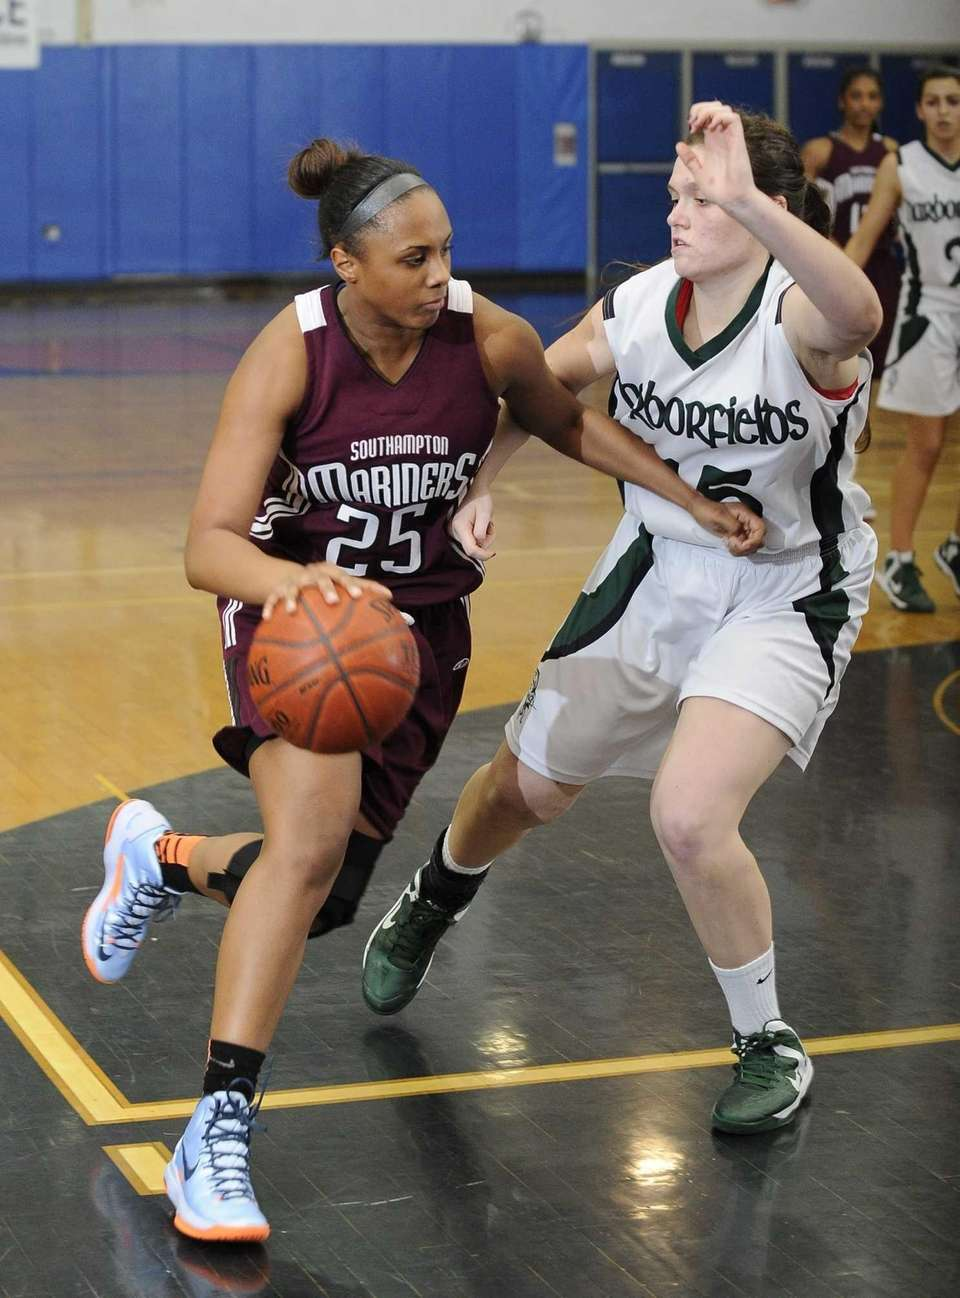 Southampton's Kesi Goree drives around Harborfields' Kristen Kelly